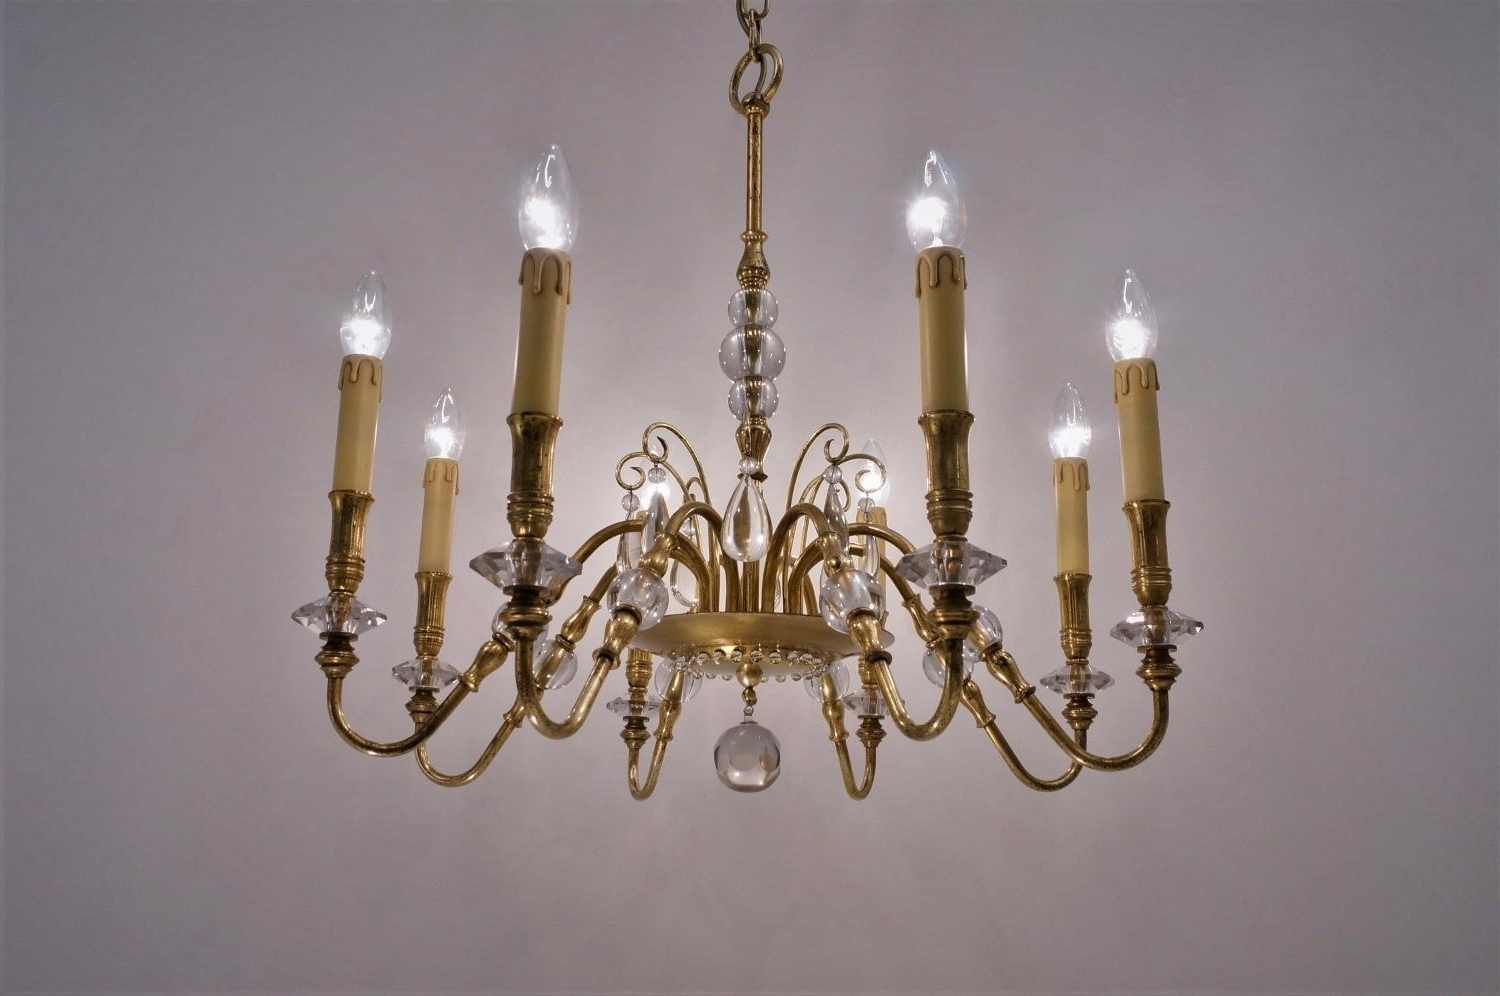 Most Recently Released French Chandelier, 1940s For Sale At Pamono With Regard To French Chandelier (View 2 of 20)